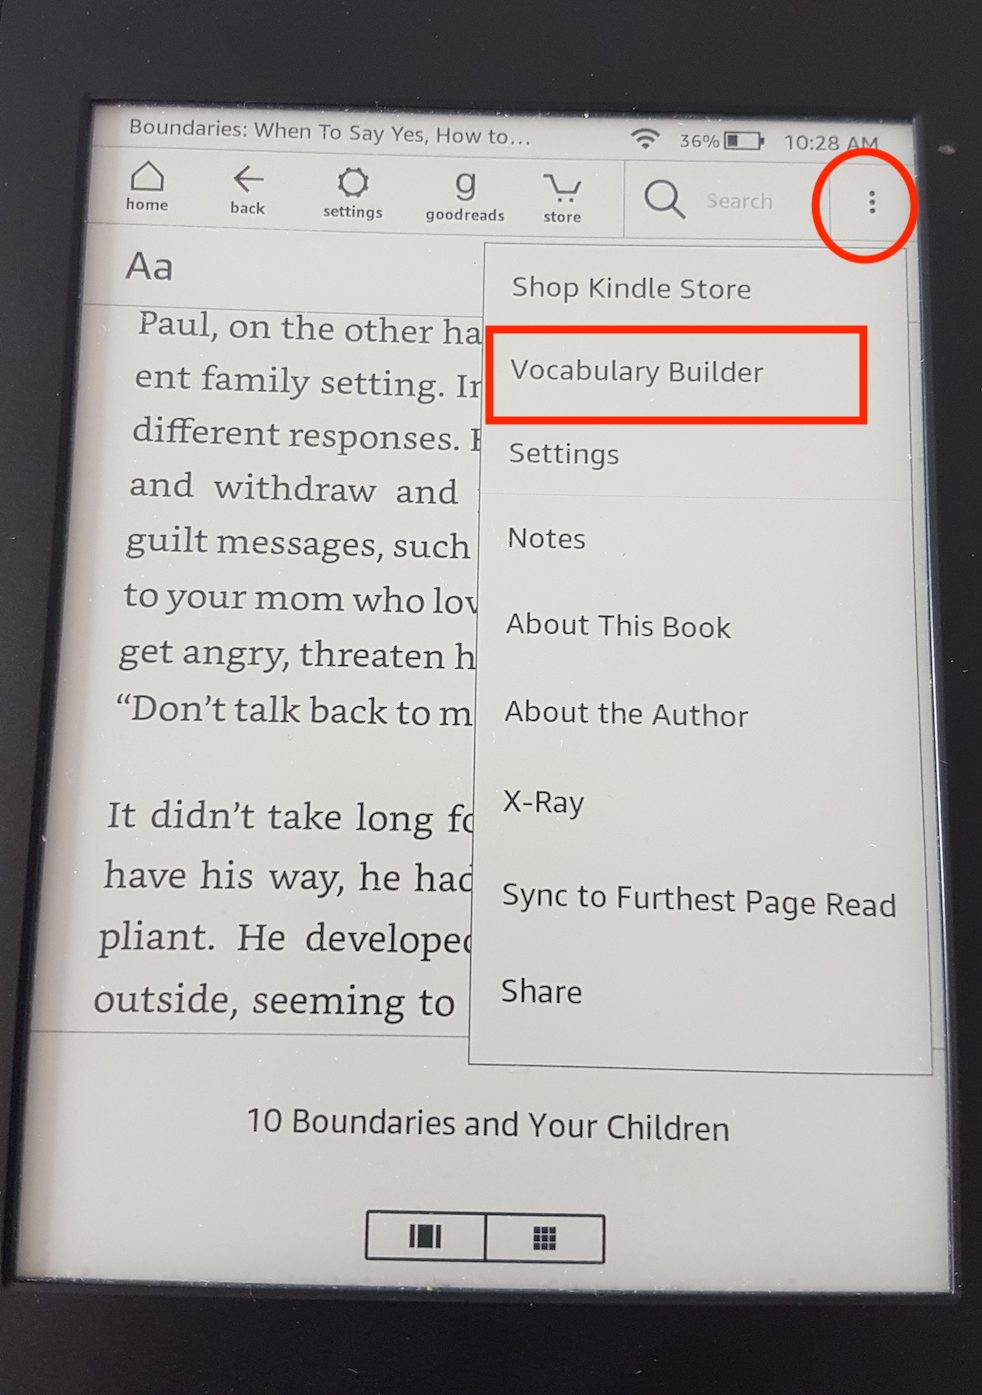 Kindle Vocabulary Builder